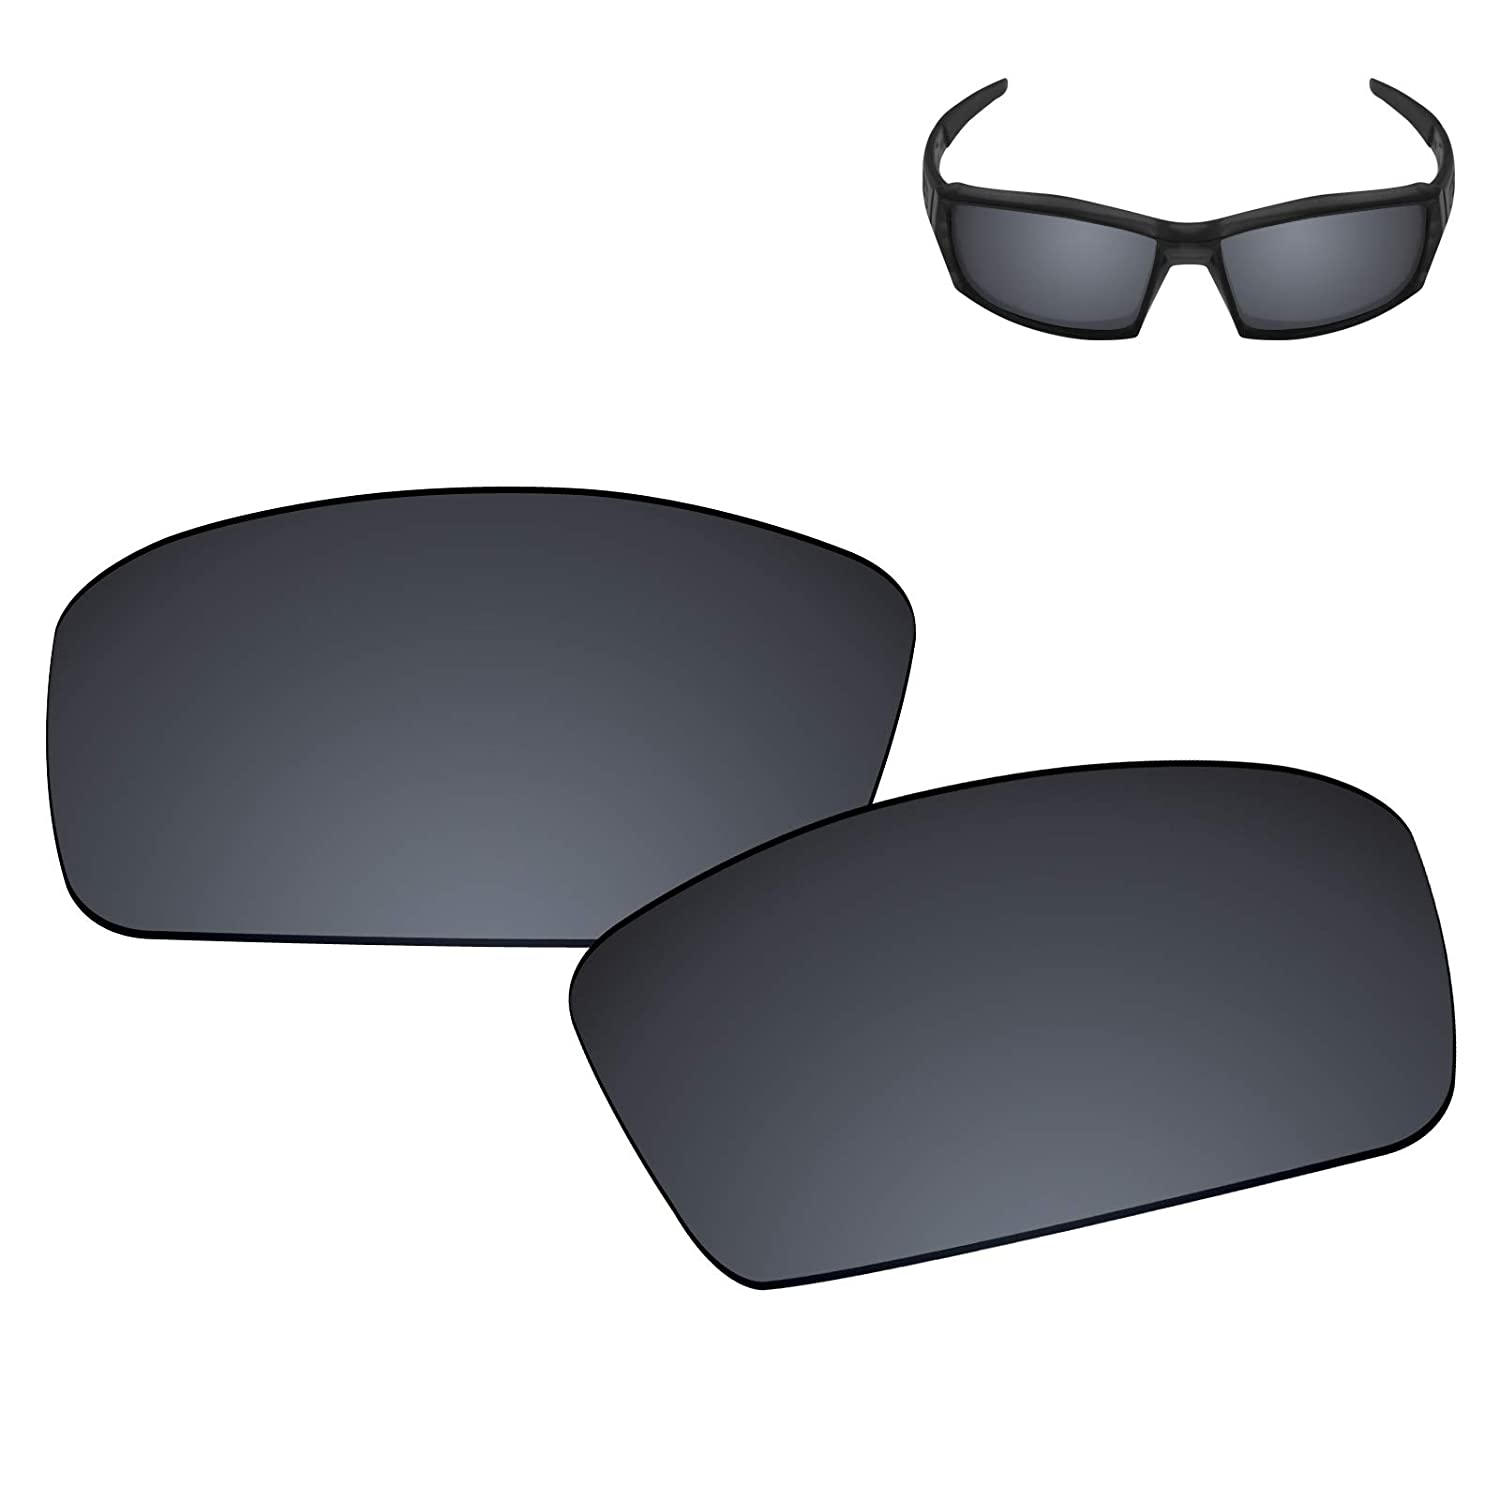 d23b0932cd Amazon.com  Galvanic Replacement Lenses for Oakley Canteen 2006 Sunglasses  - Amber + Black Polarized - Combo Pack  Clothing